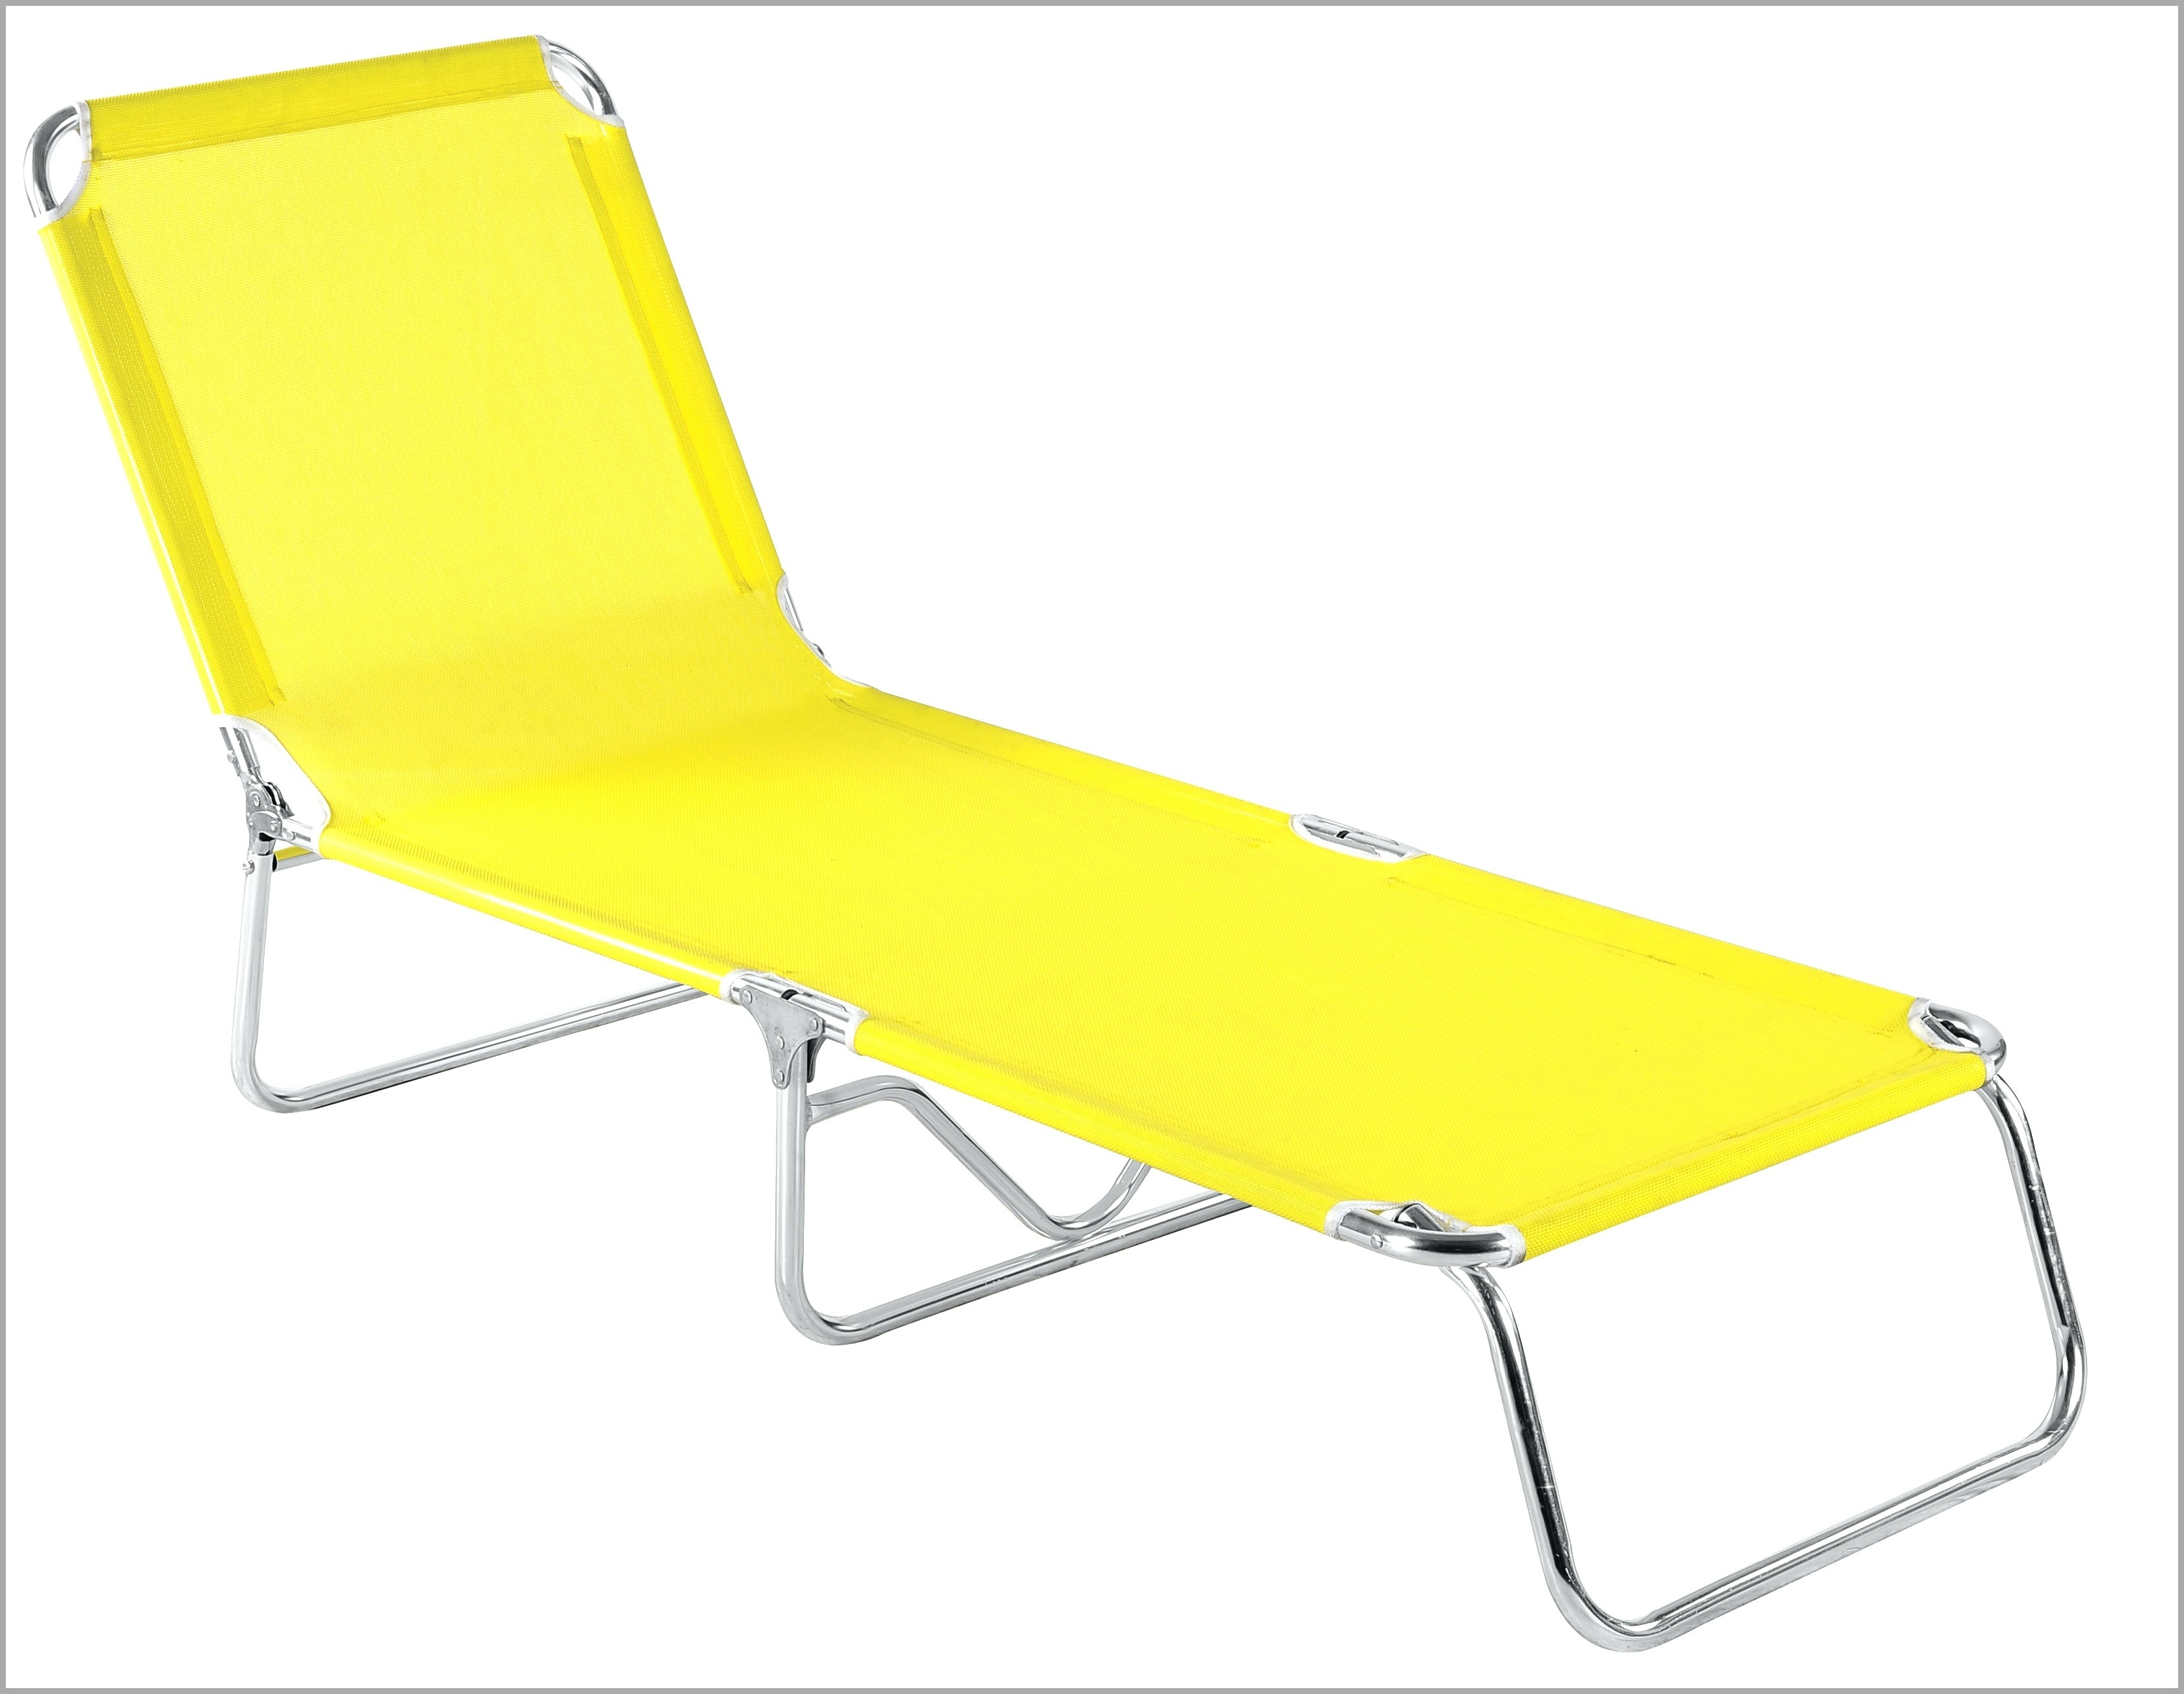 Chaise Lounge Chairs At Target Throughout Most Recently Released Marvelous Target Lawn Chairs Folding Decor 447648 – Chair Ideas (View 4 of 15)